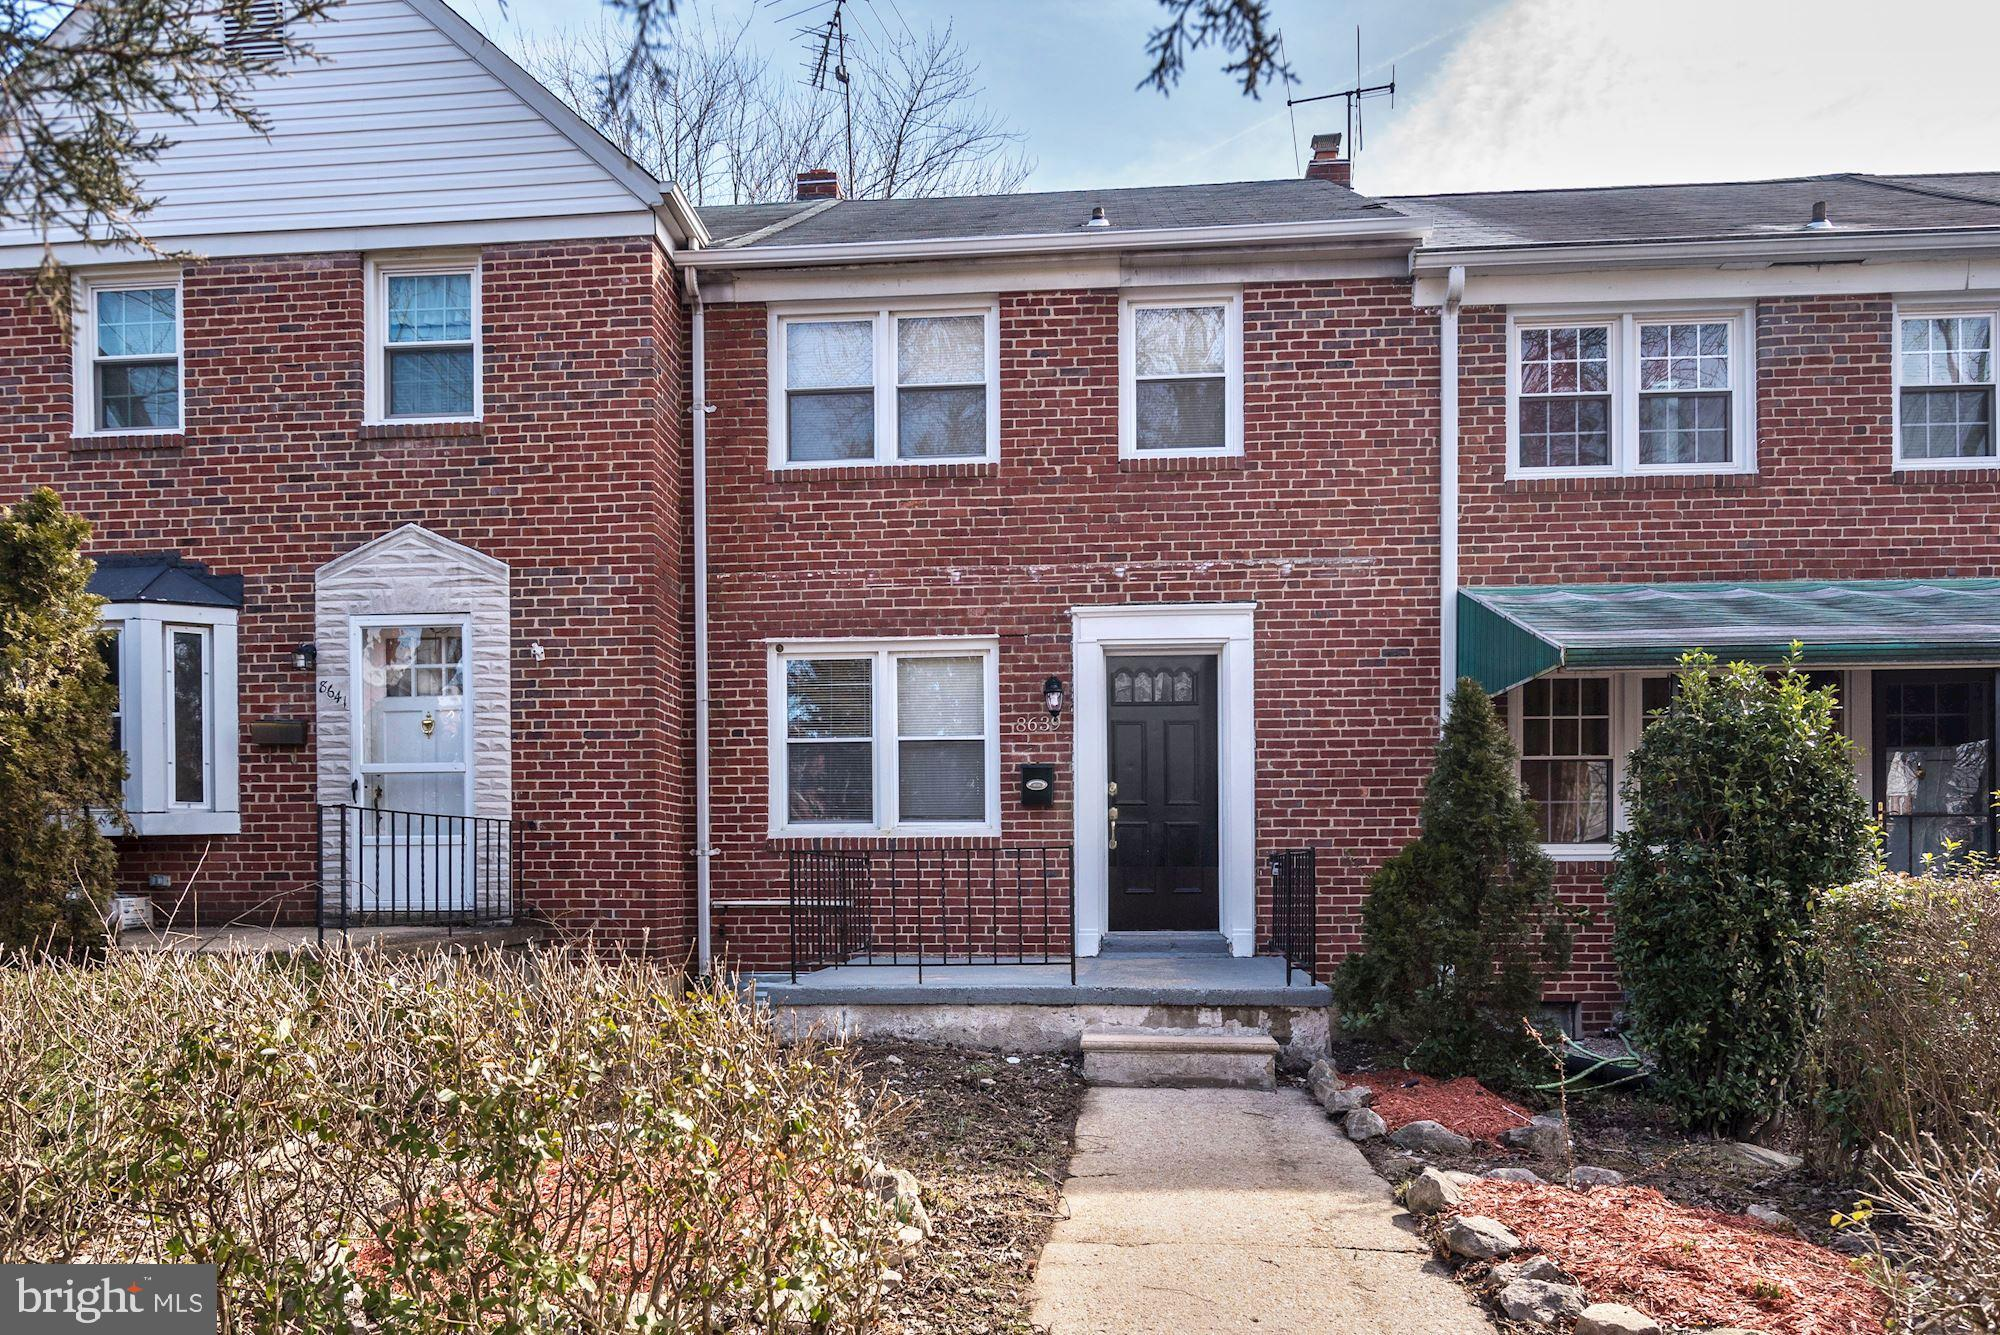 Beautiful and delightful updated rowhome in Loch Raven/Parkville!! Updated floors throughout the main level, spacious living room open to dining room, updated kitchen w/ ample cabinet space, stone backsplash and stainless steel appliances. Upper-level w/ 3 bedrooms & updated full bath, finished basement w/ family or rec room, 2nd full bath, and laundry area.  Spacious rear deck overlooking large backyard! All plumbing, electric & HVAC work was permitted. Unpack your bags & move right in!